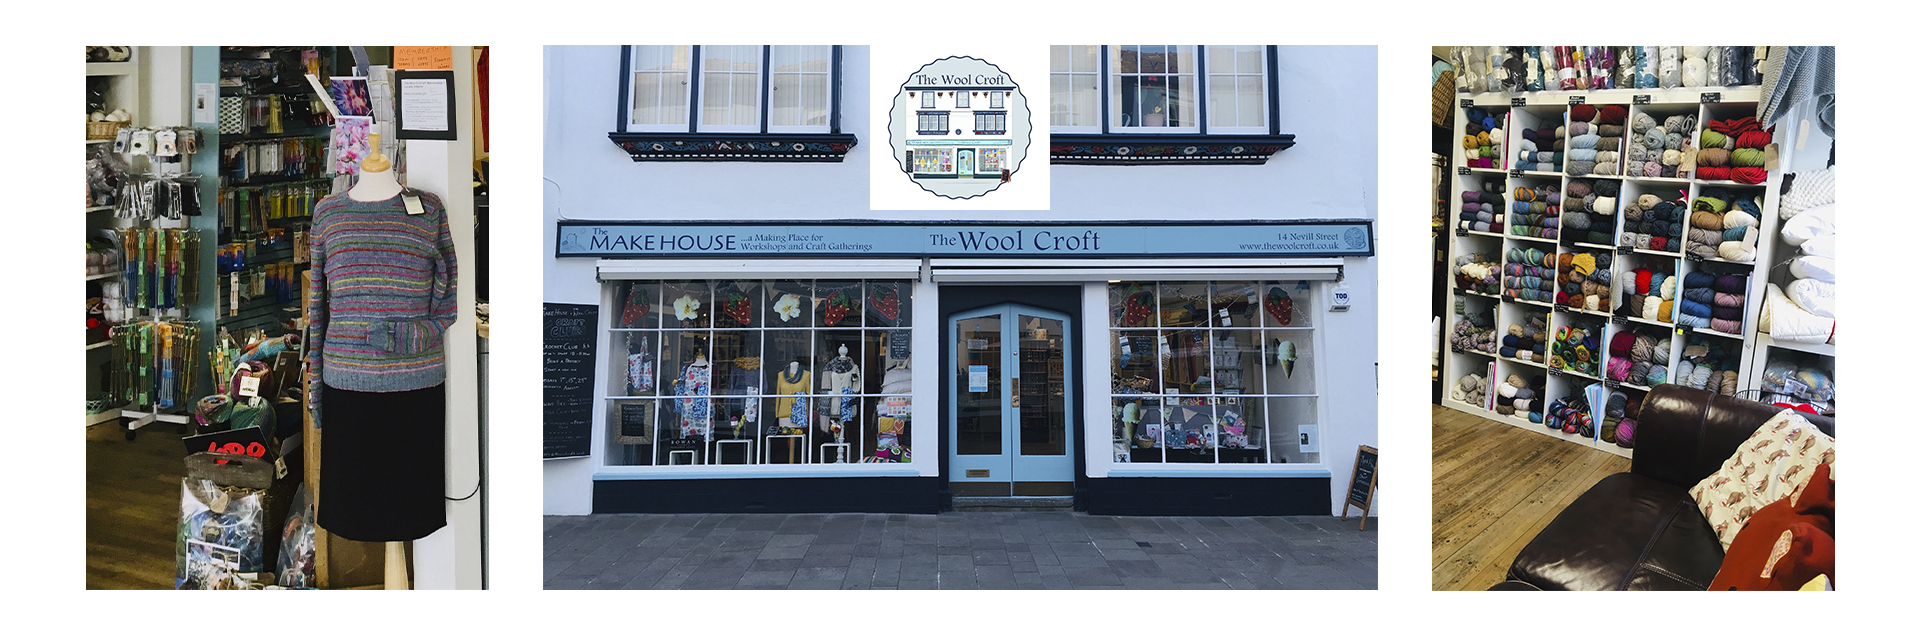 The Wool Croft is a well-established, modern yarn and craft store in the heart of Abergavenny, Wales. The shop won the Award for Best Independent Wool Shop in Wales four times in the Let's Knit National Knitting Awards.